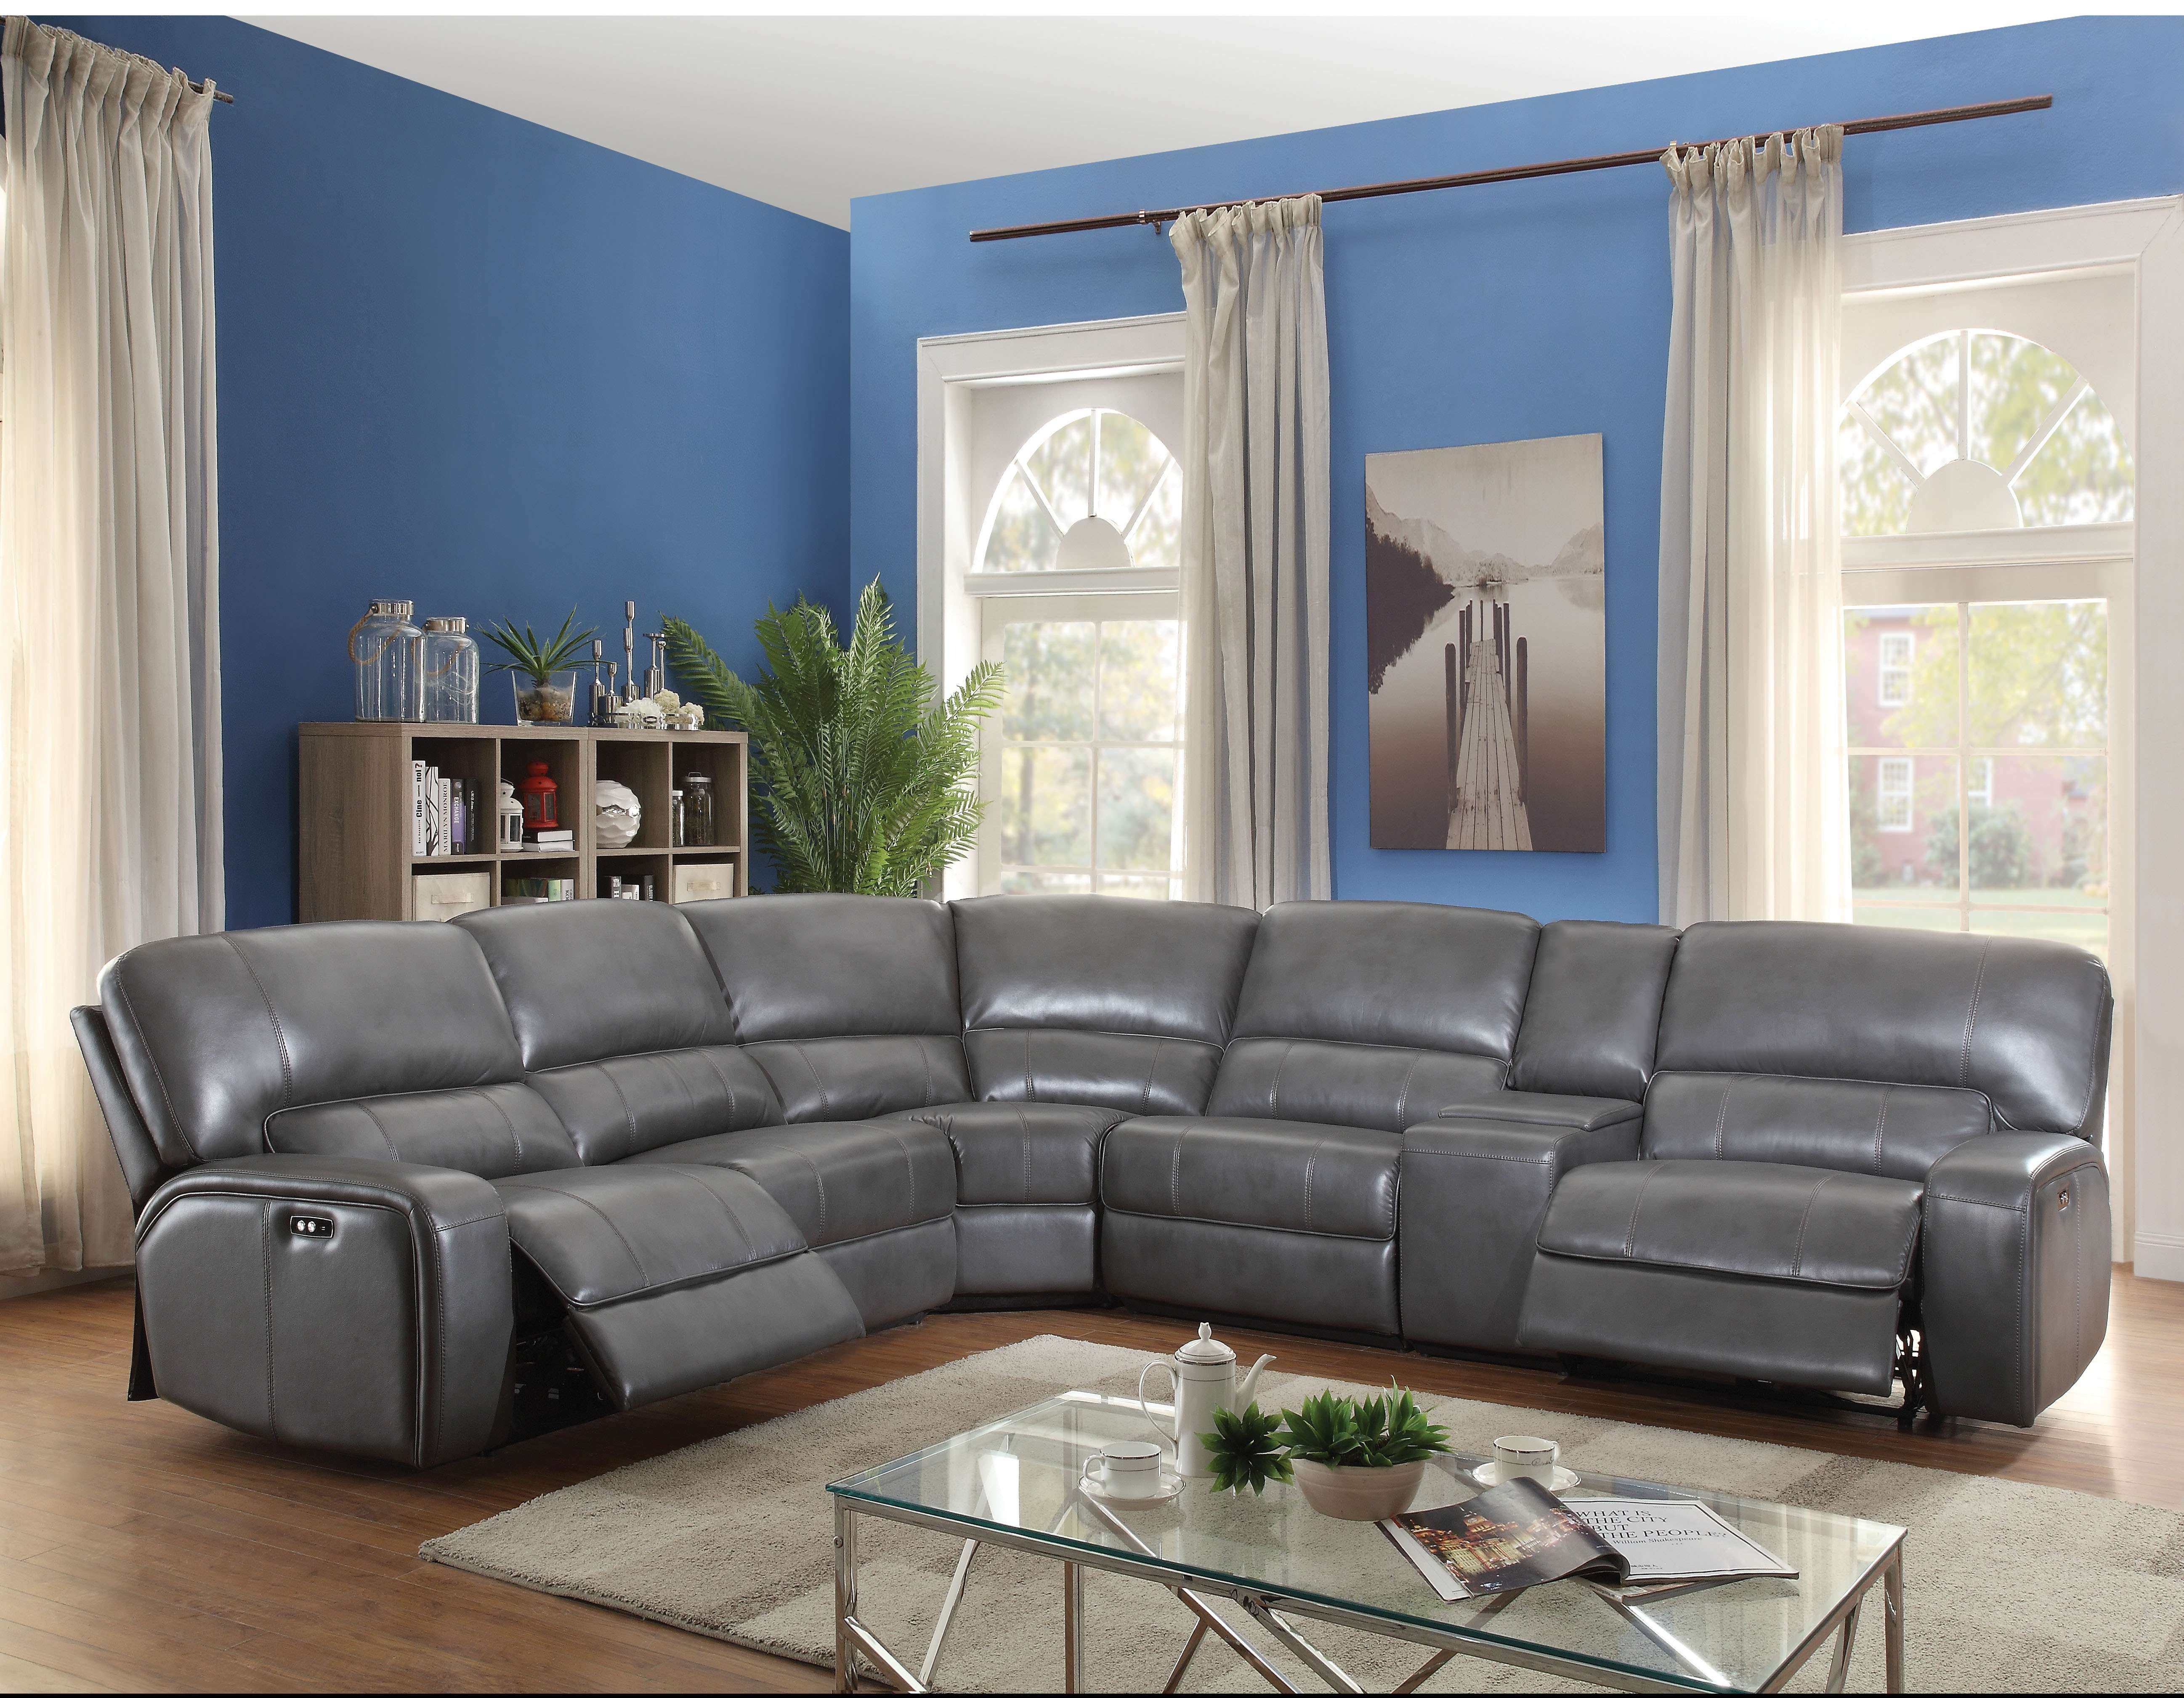 Acme Furniture Saul Gray Leather Aire Power Motion Sectional Sofa With Usb 53745 Goedekers Com Reclining Sectional Living Room Furniture Recliner Leather Reclining Sectional